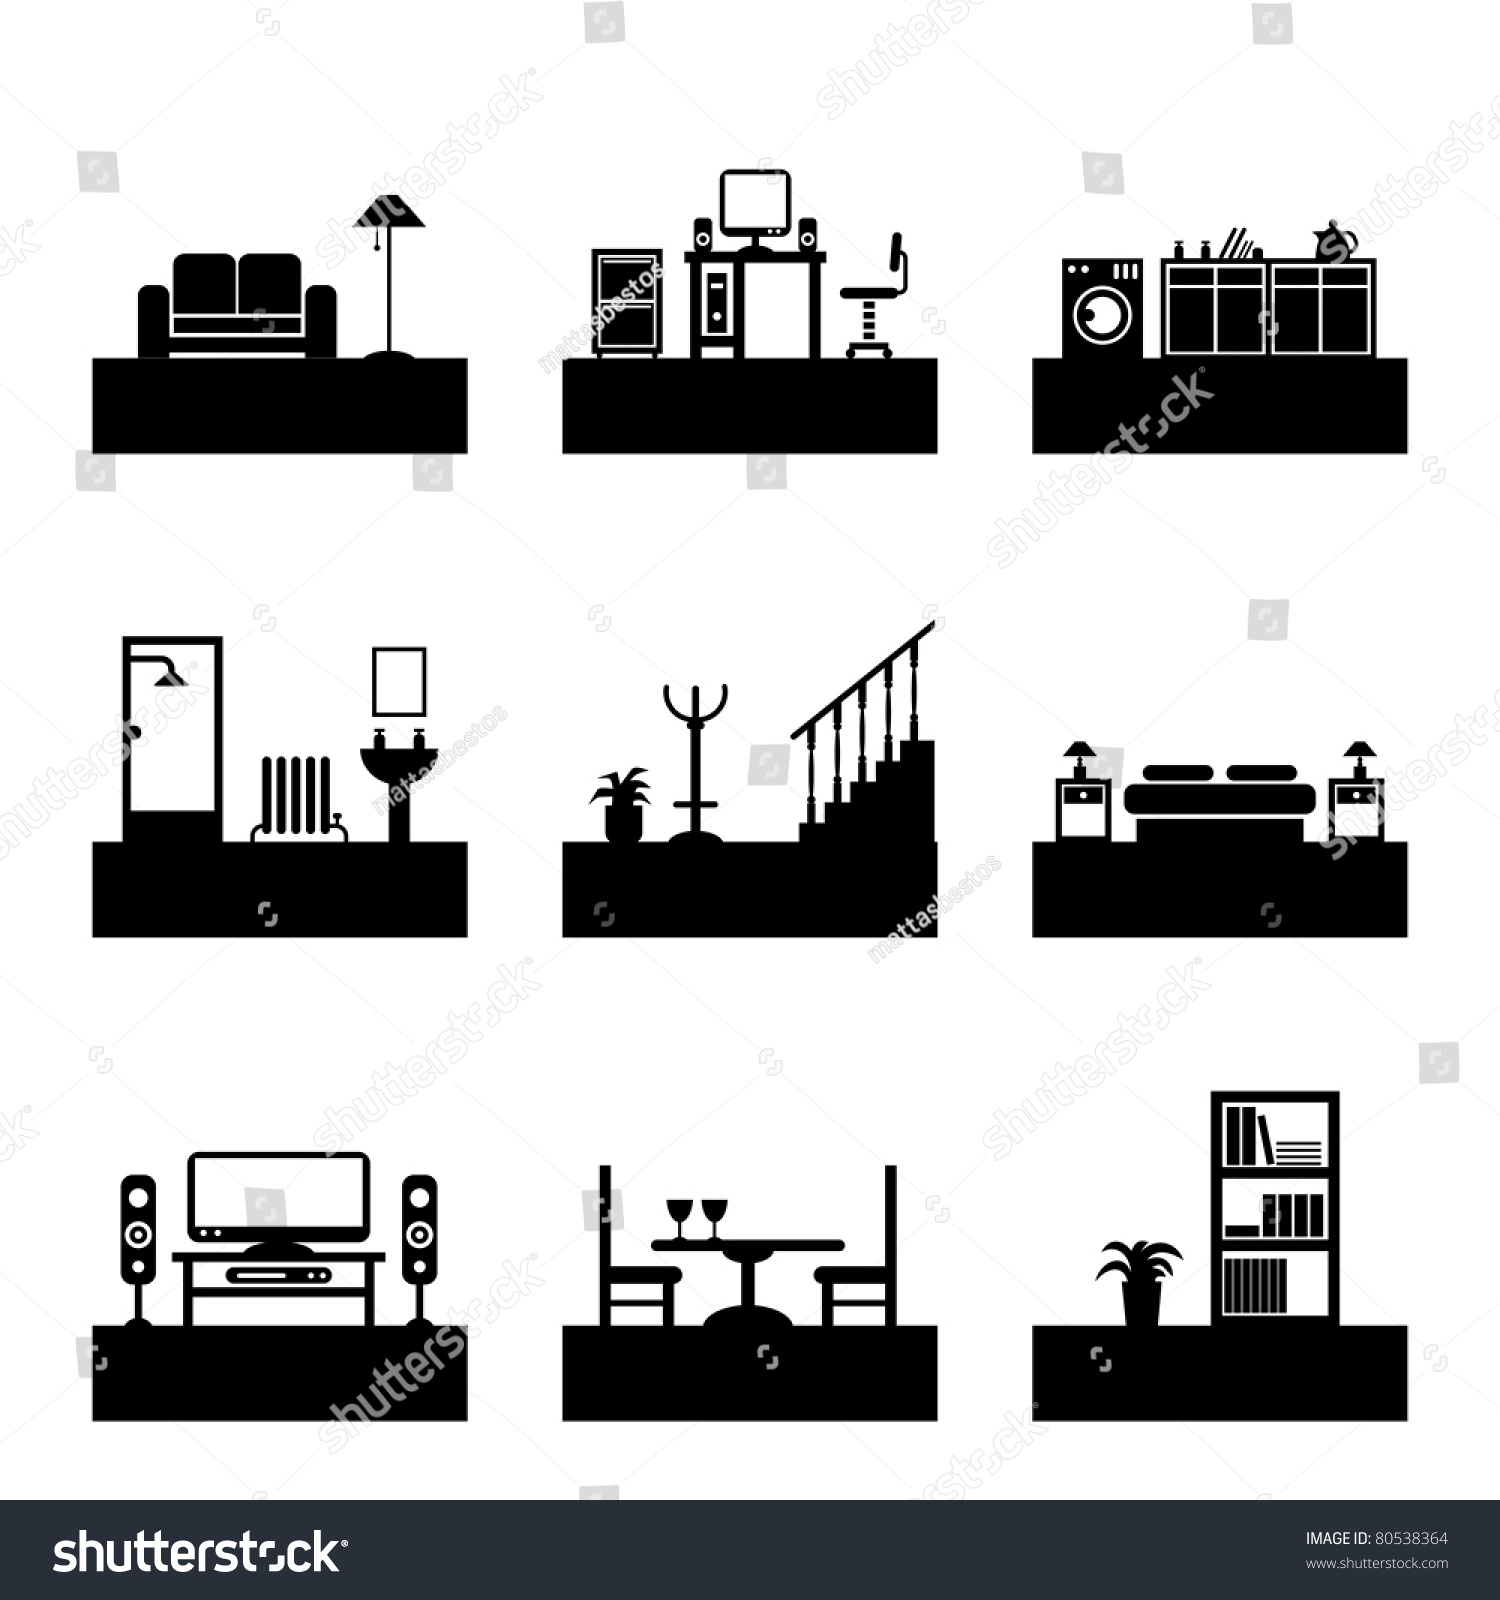 Home Interior Design Silhouette Icons Easily Editable For Color Change